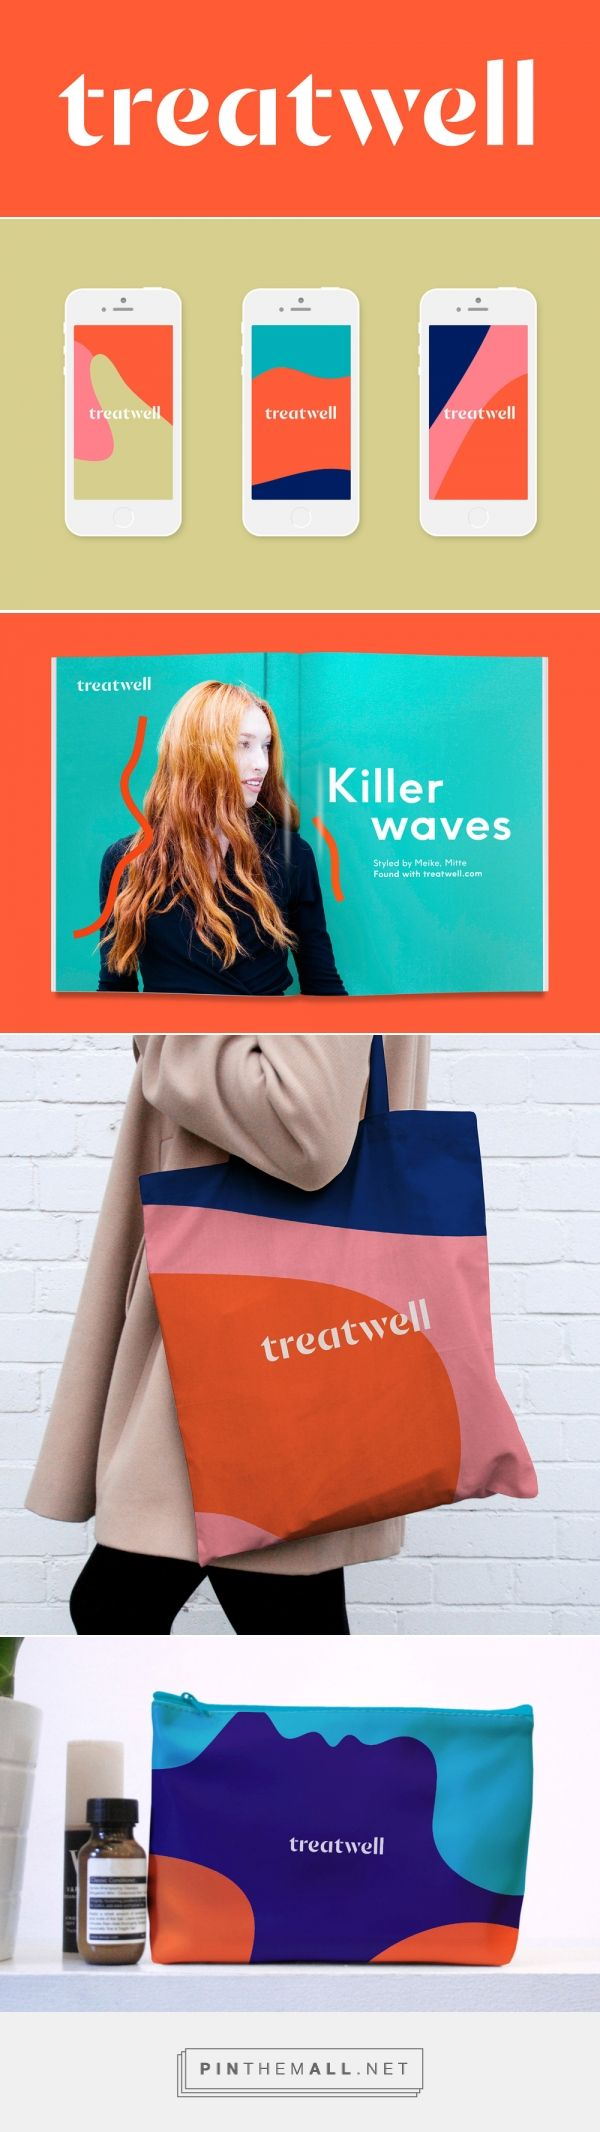 Brand New: New Name, Logo, and Identity for Treatwell by DesignStudio - created via